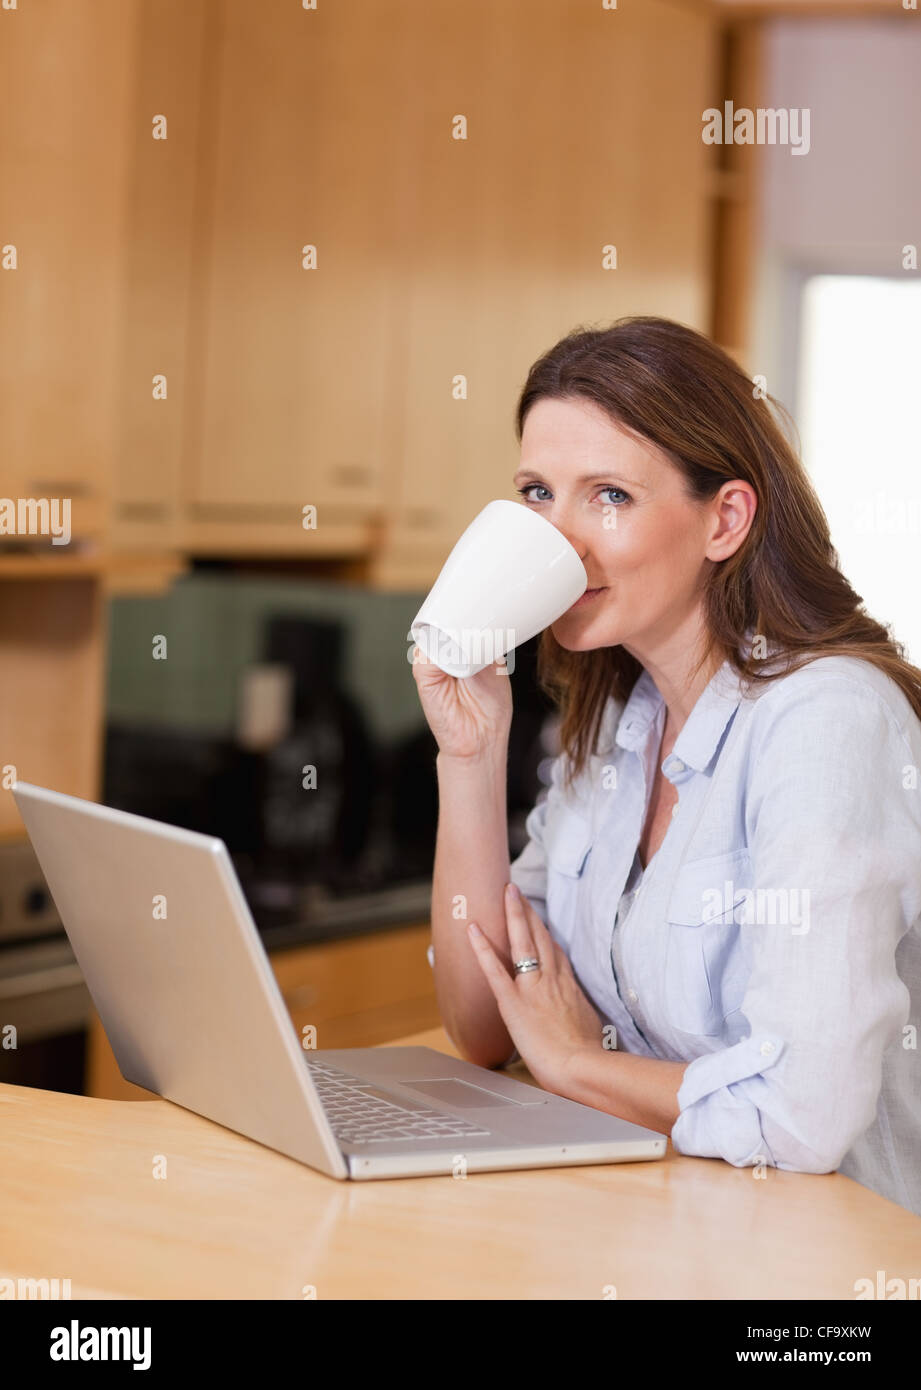 Woman taking a sip of coffee next to laptop - Stock Image